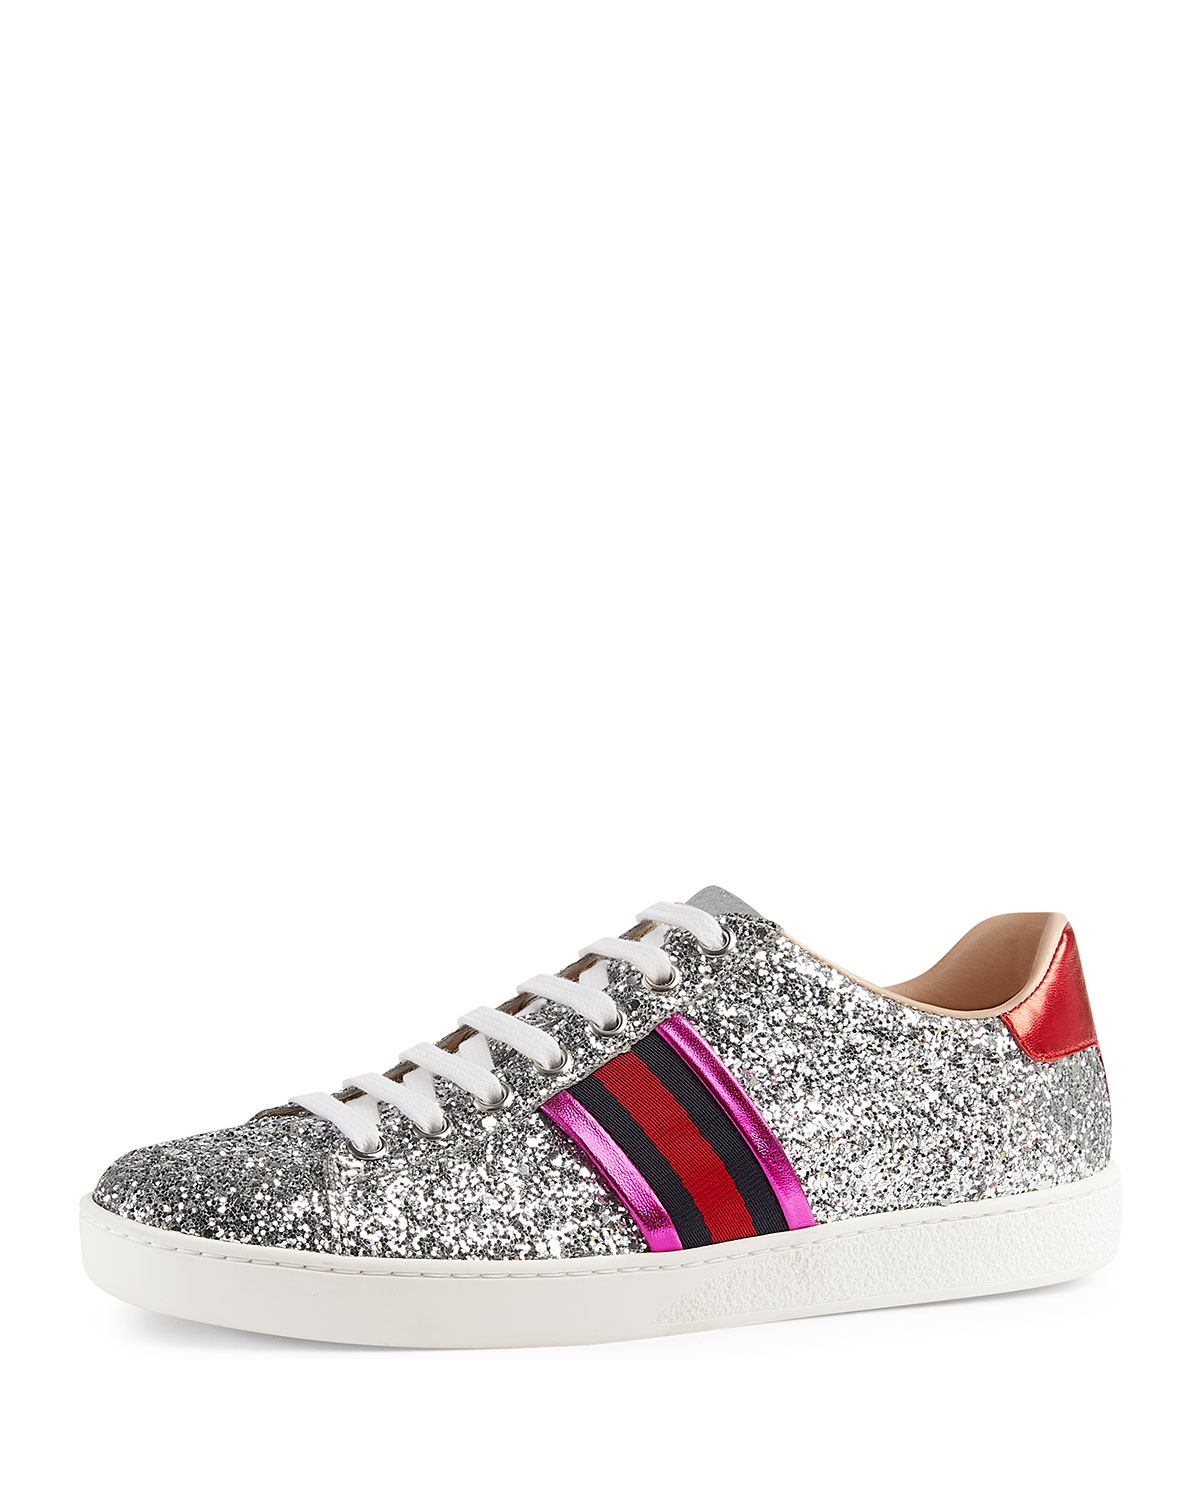 Gucci New Ace Glitter Low-Top Sneaker